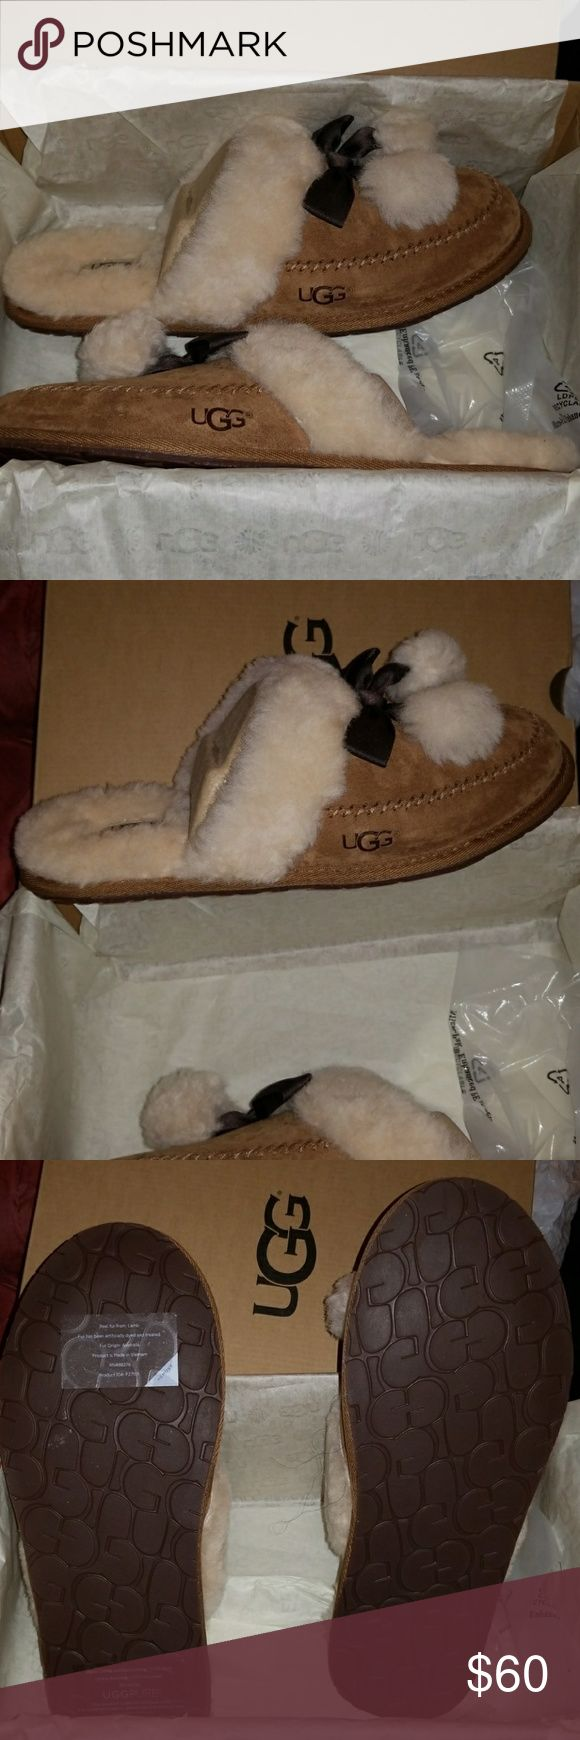 Ugg Slippers Brand new Ugg slippers, great for this season! Sold out online & at most Ugg stores! UGG Shoes Slippers